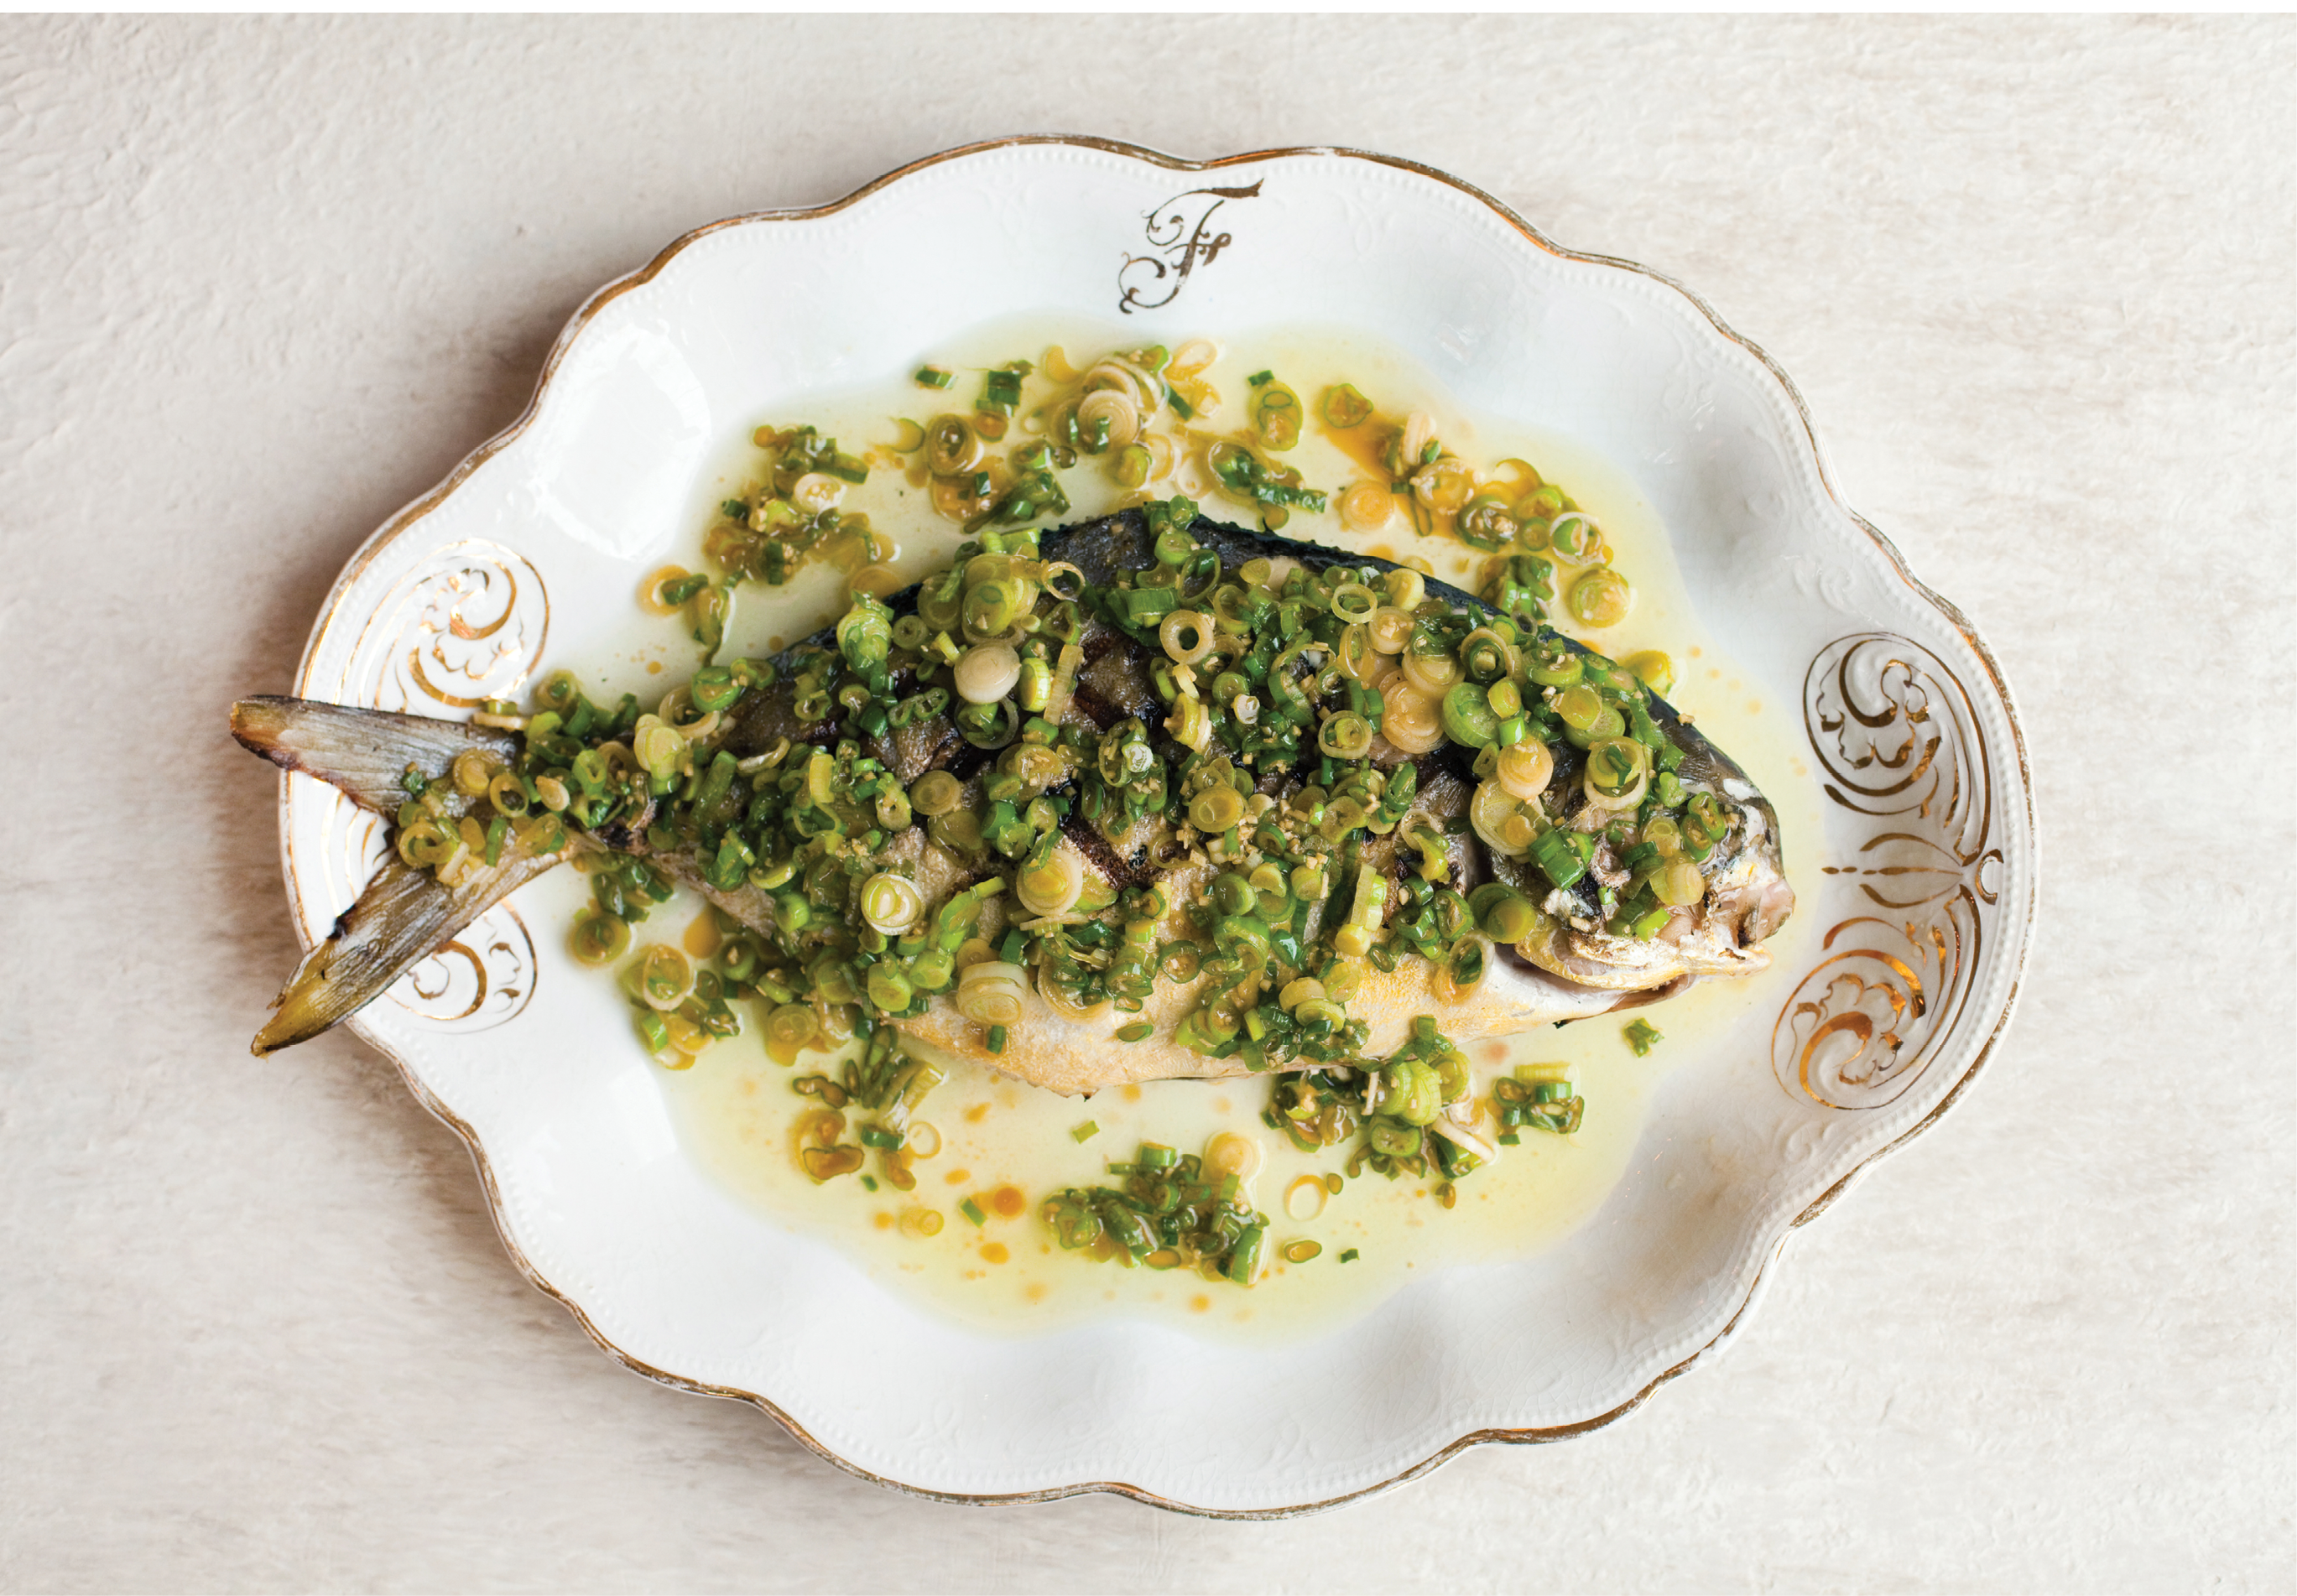 On the Menu: Marhefka's catch determines the menus at many top local restaurants: grilled pompano with ginger-scallion sauce at Chubby Fish